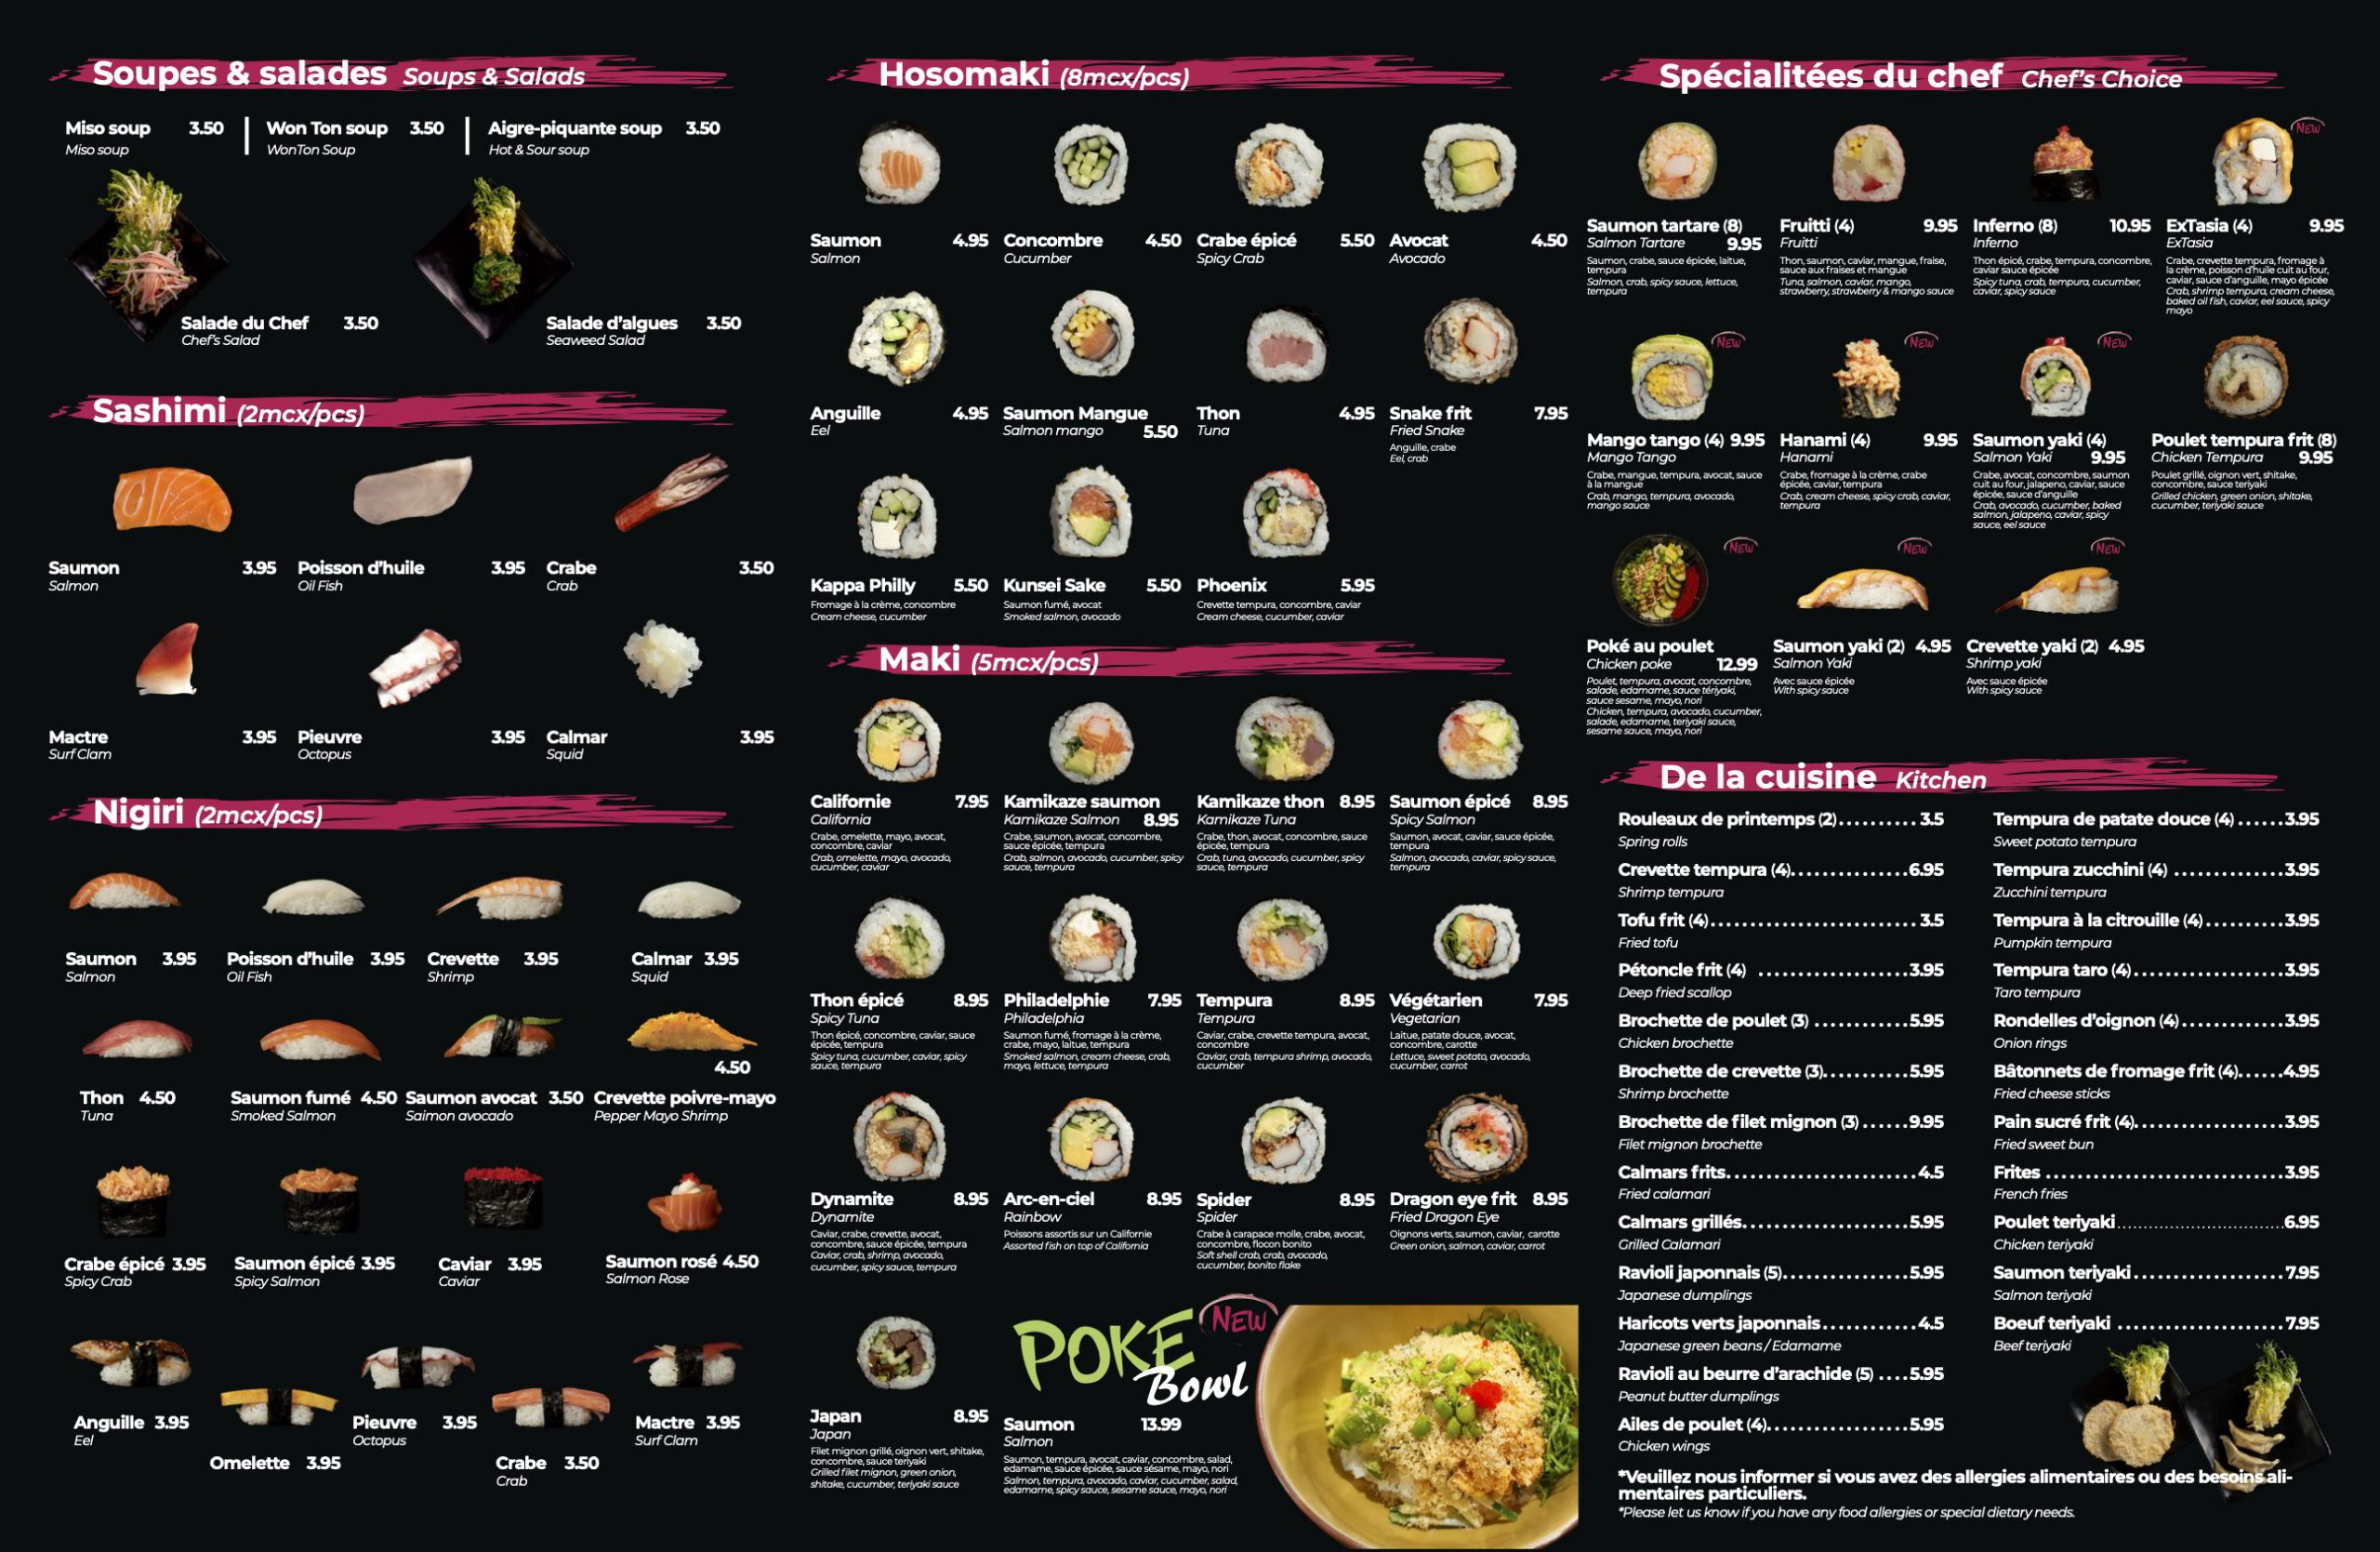 take-out-menu-v2_c-scaled.jpg